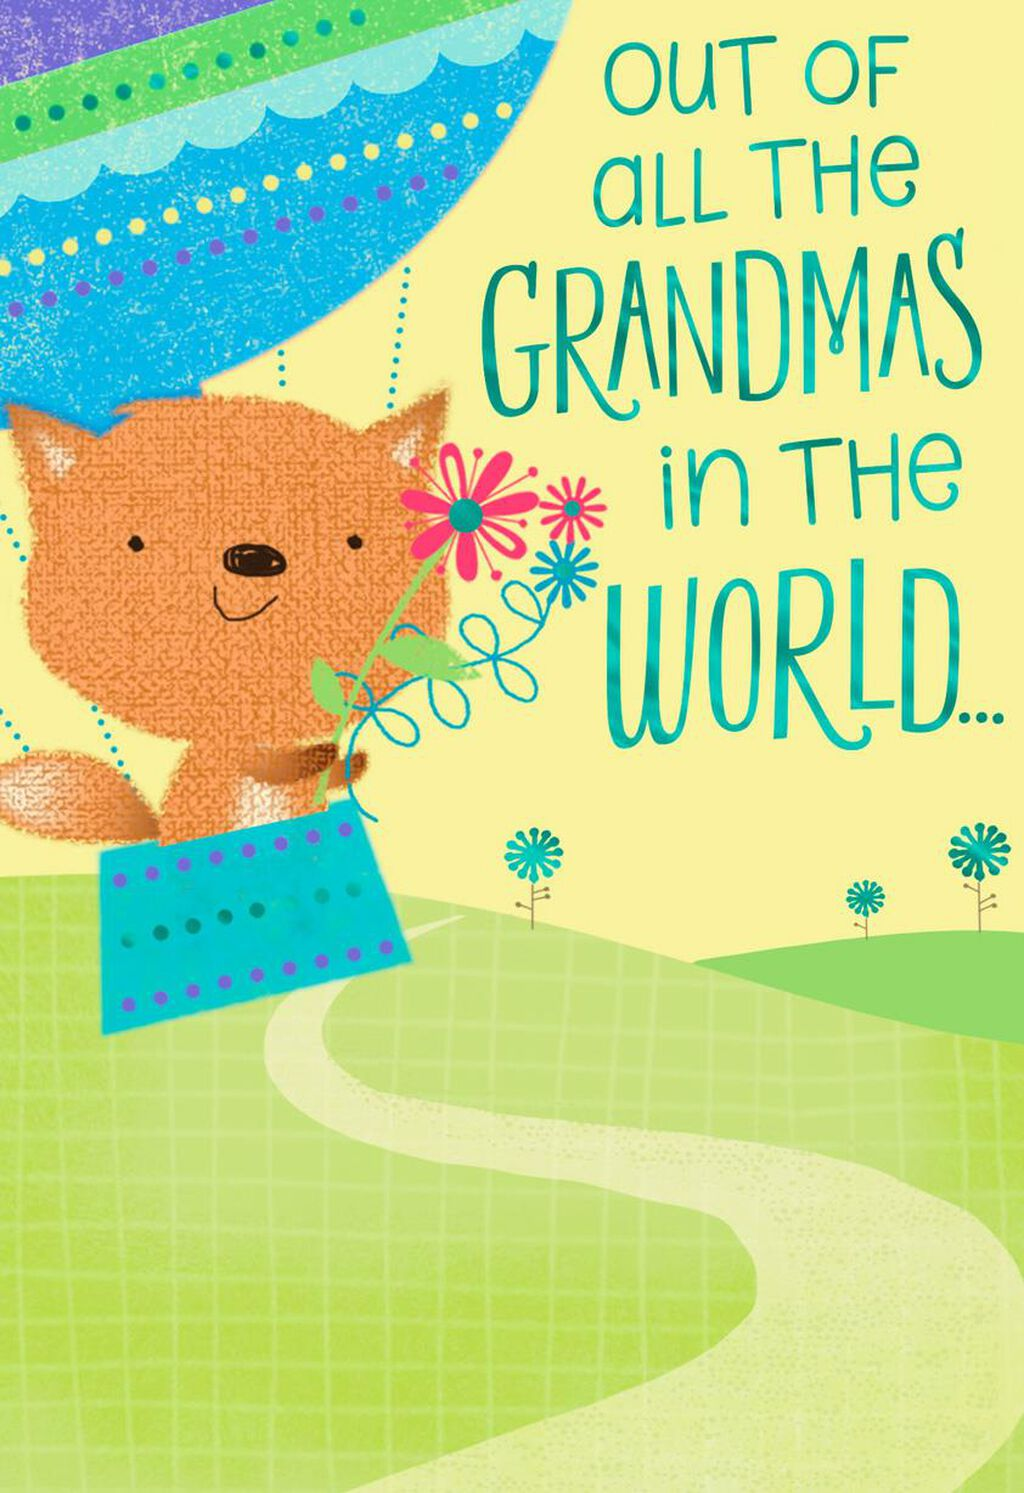 Perfect Grandma Birthday Card From Grandson